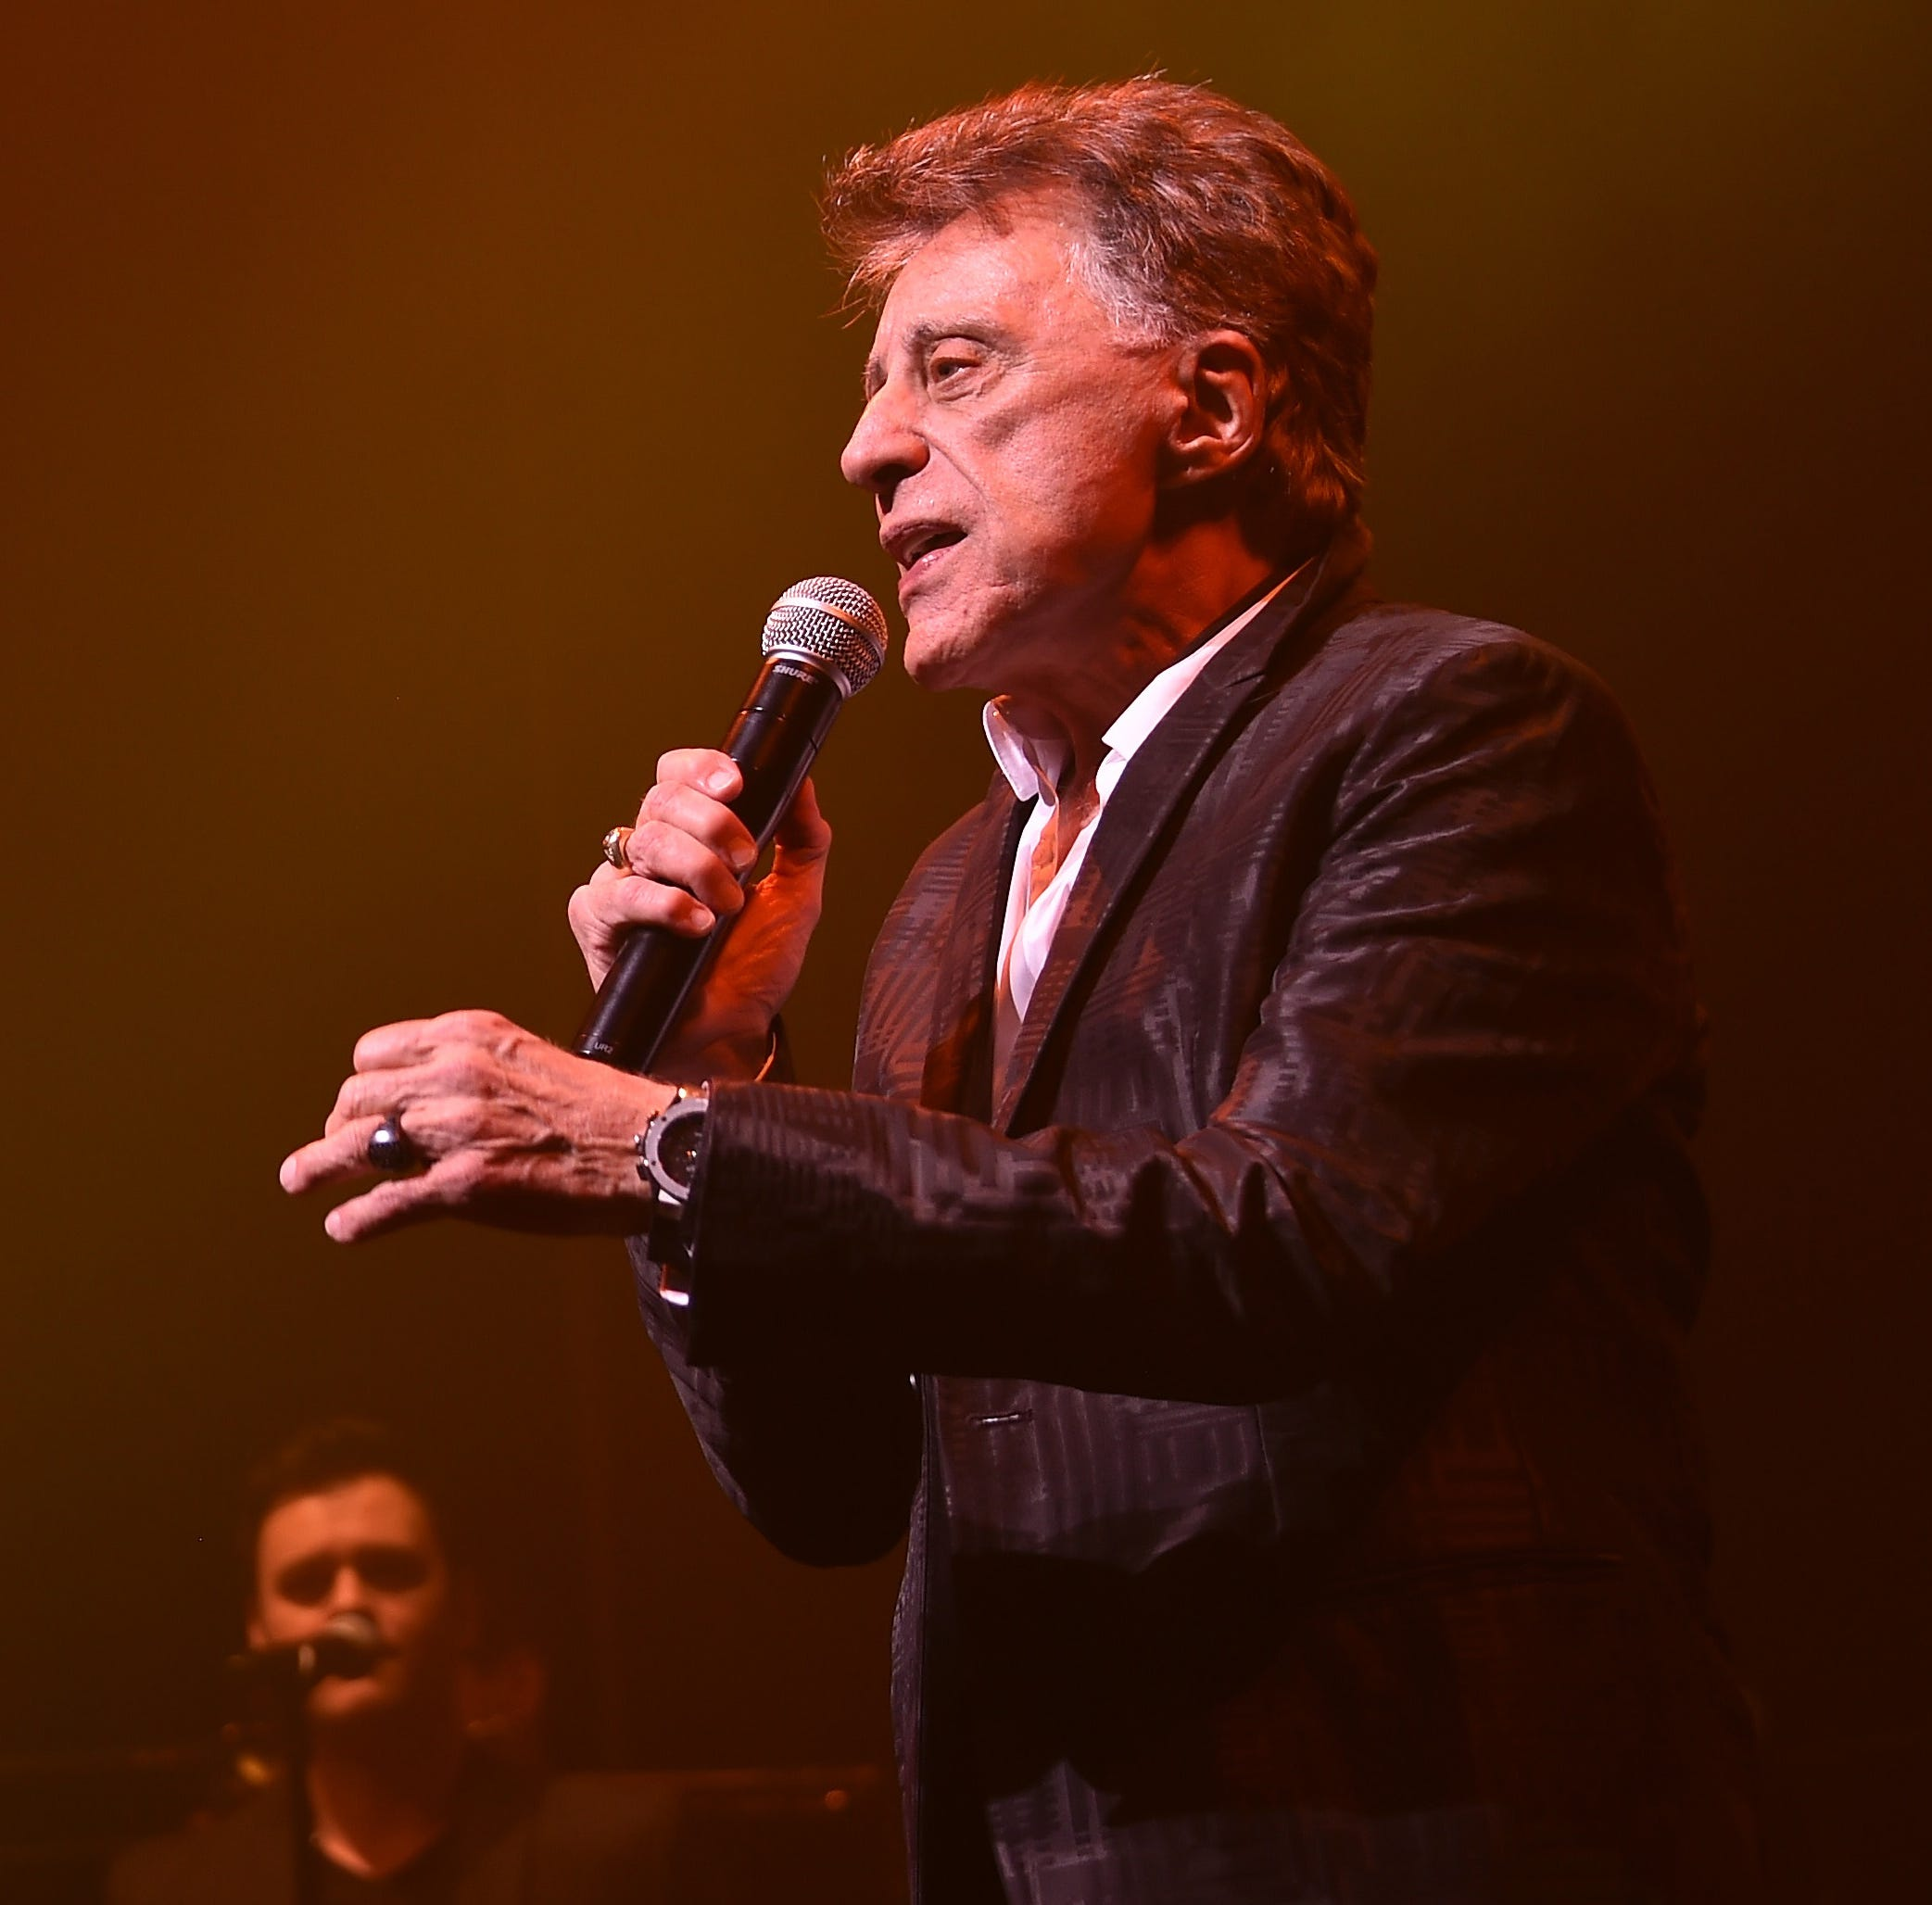 Frankie Valli: 'How do you beat Cole Porter and Irving Berlin?'